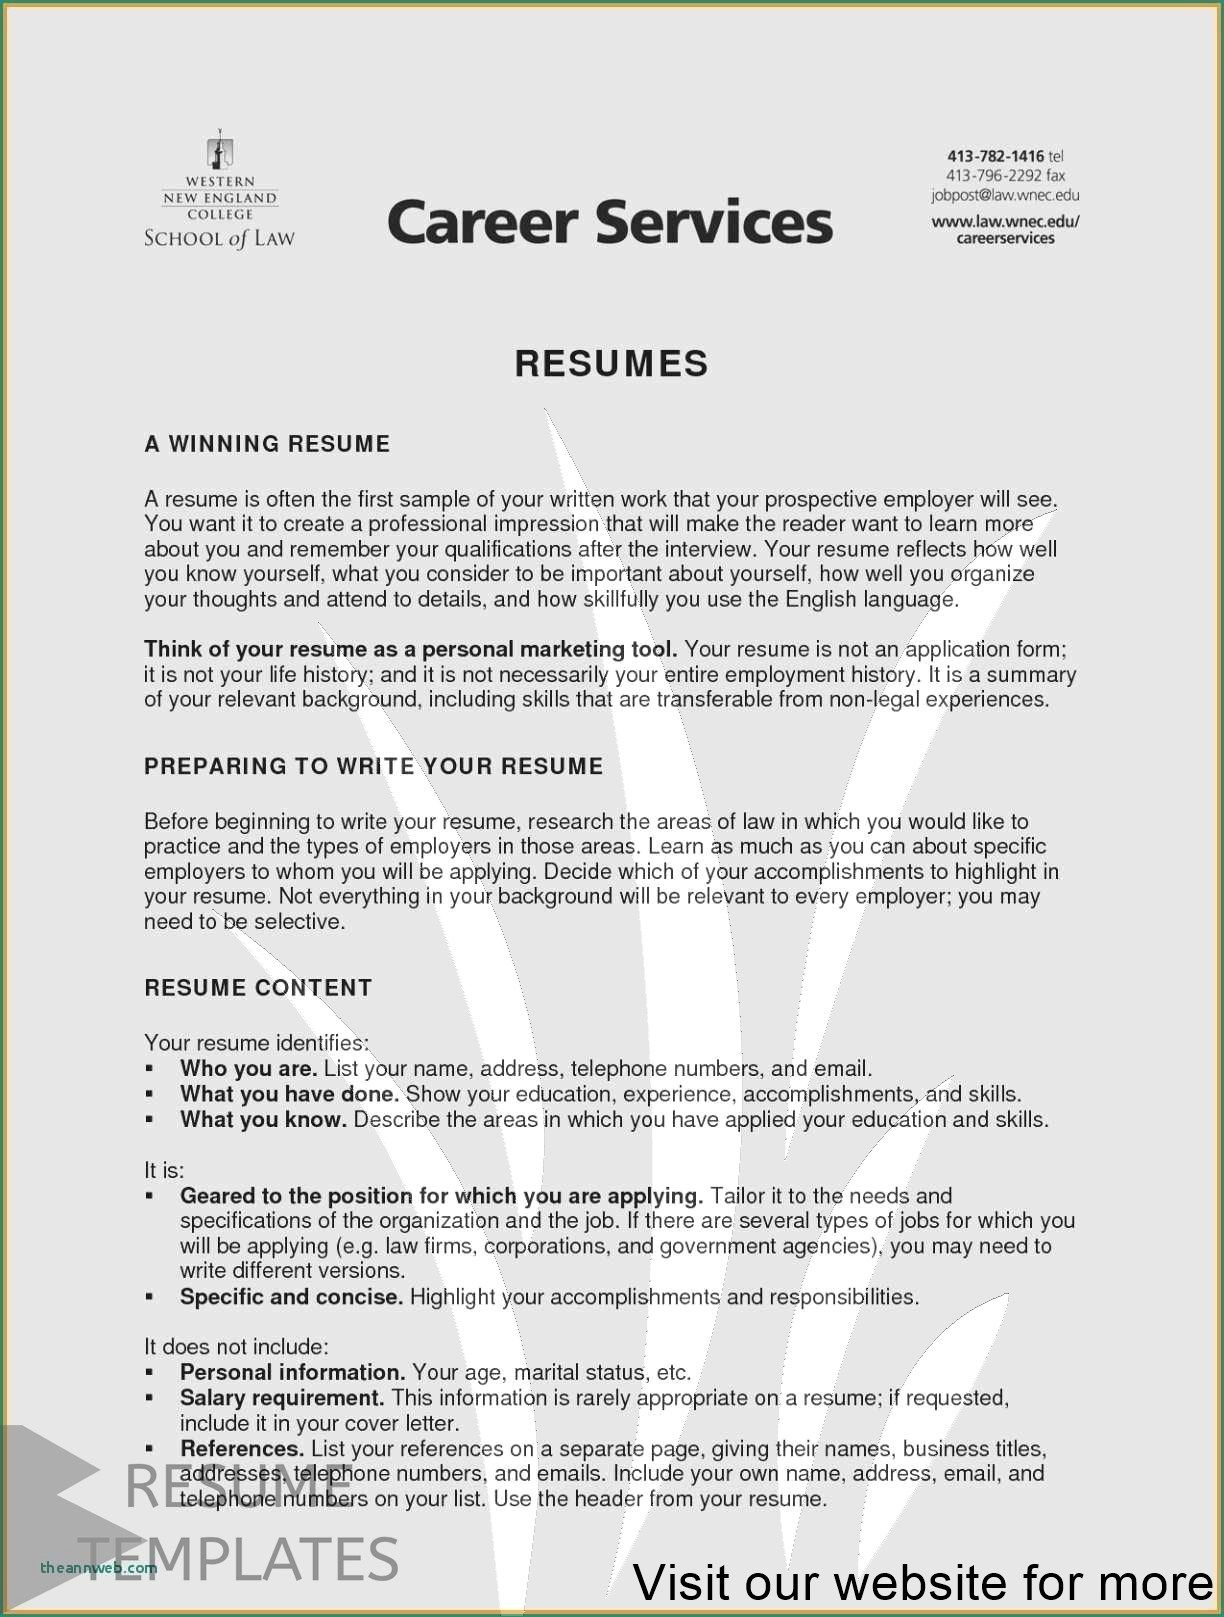 resume example format Professional in 2020 Basic resume